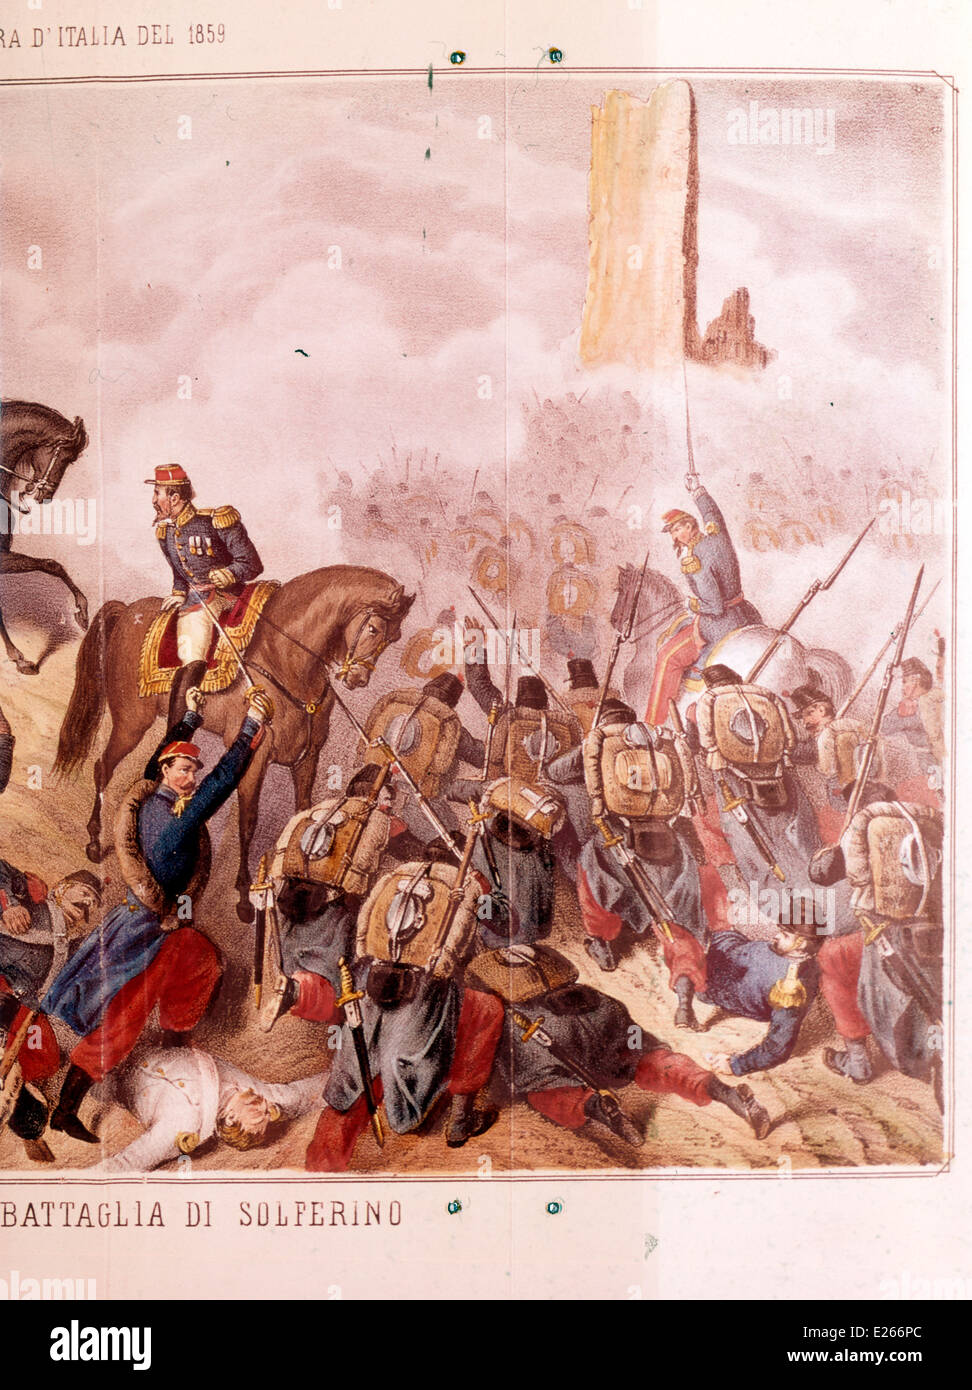 Renaissance,Italian troops defeated the Austrians,lithography of 19th century,milan,museo del risorgimento - Stock Image